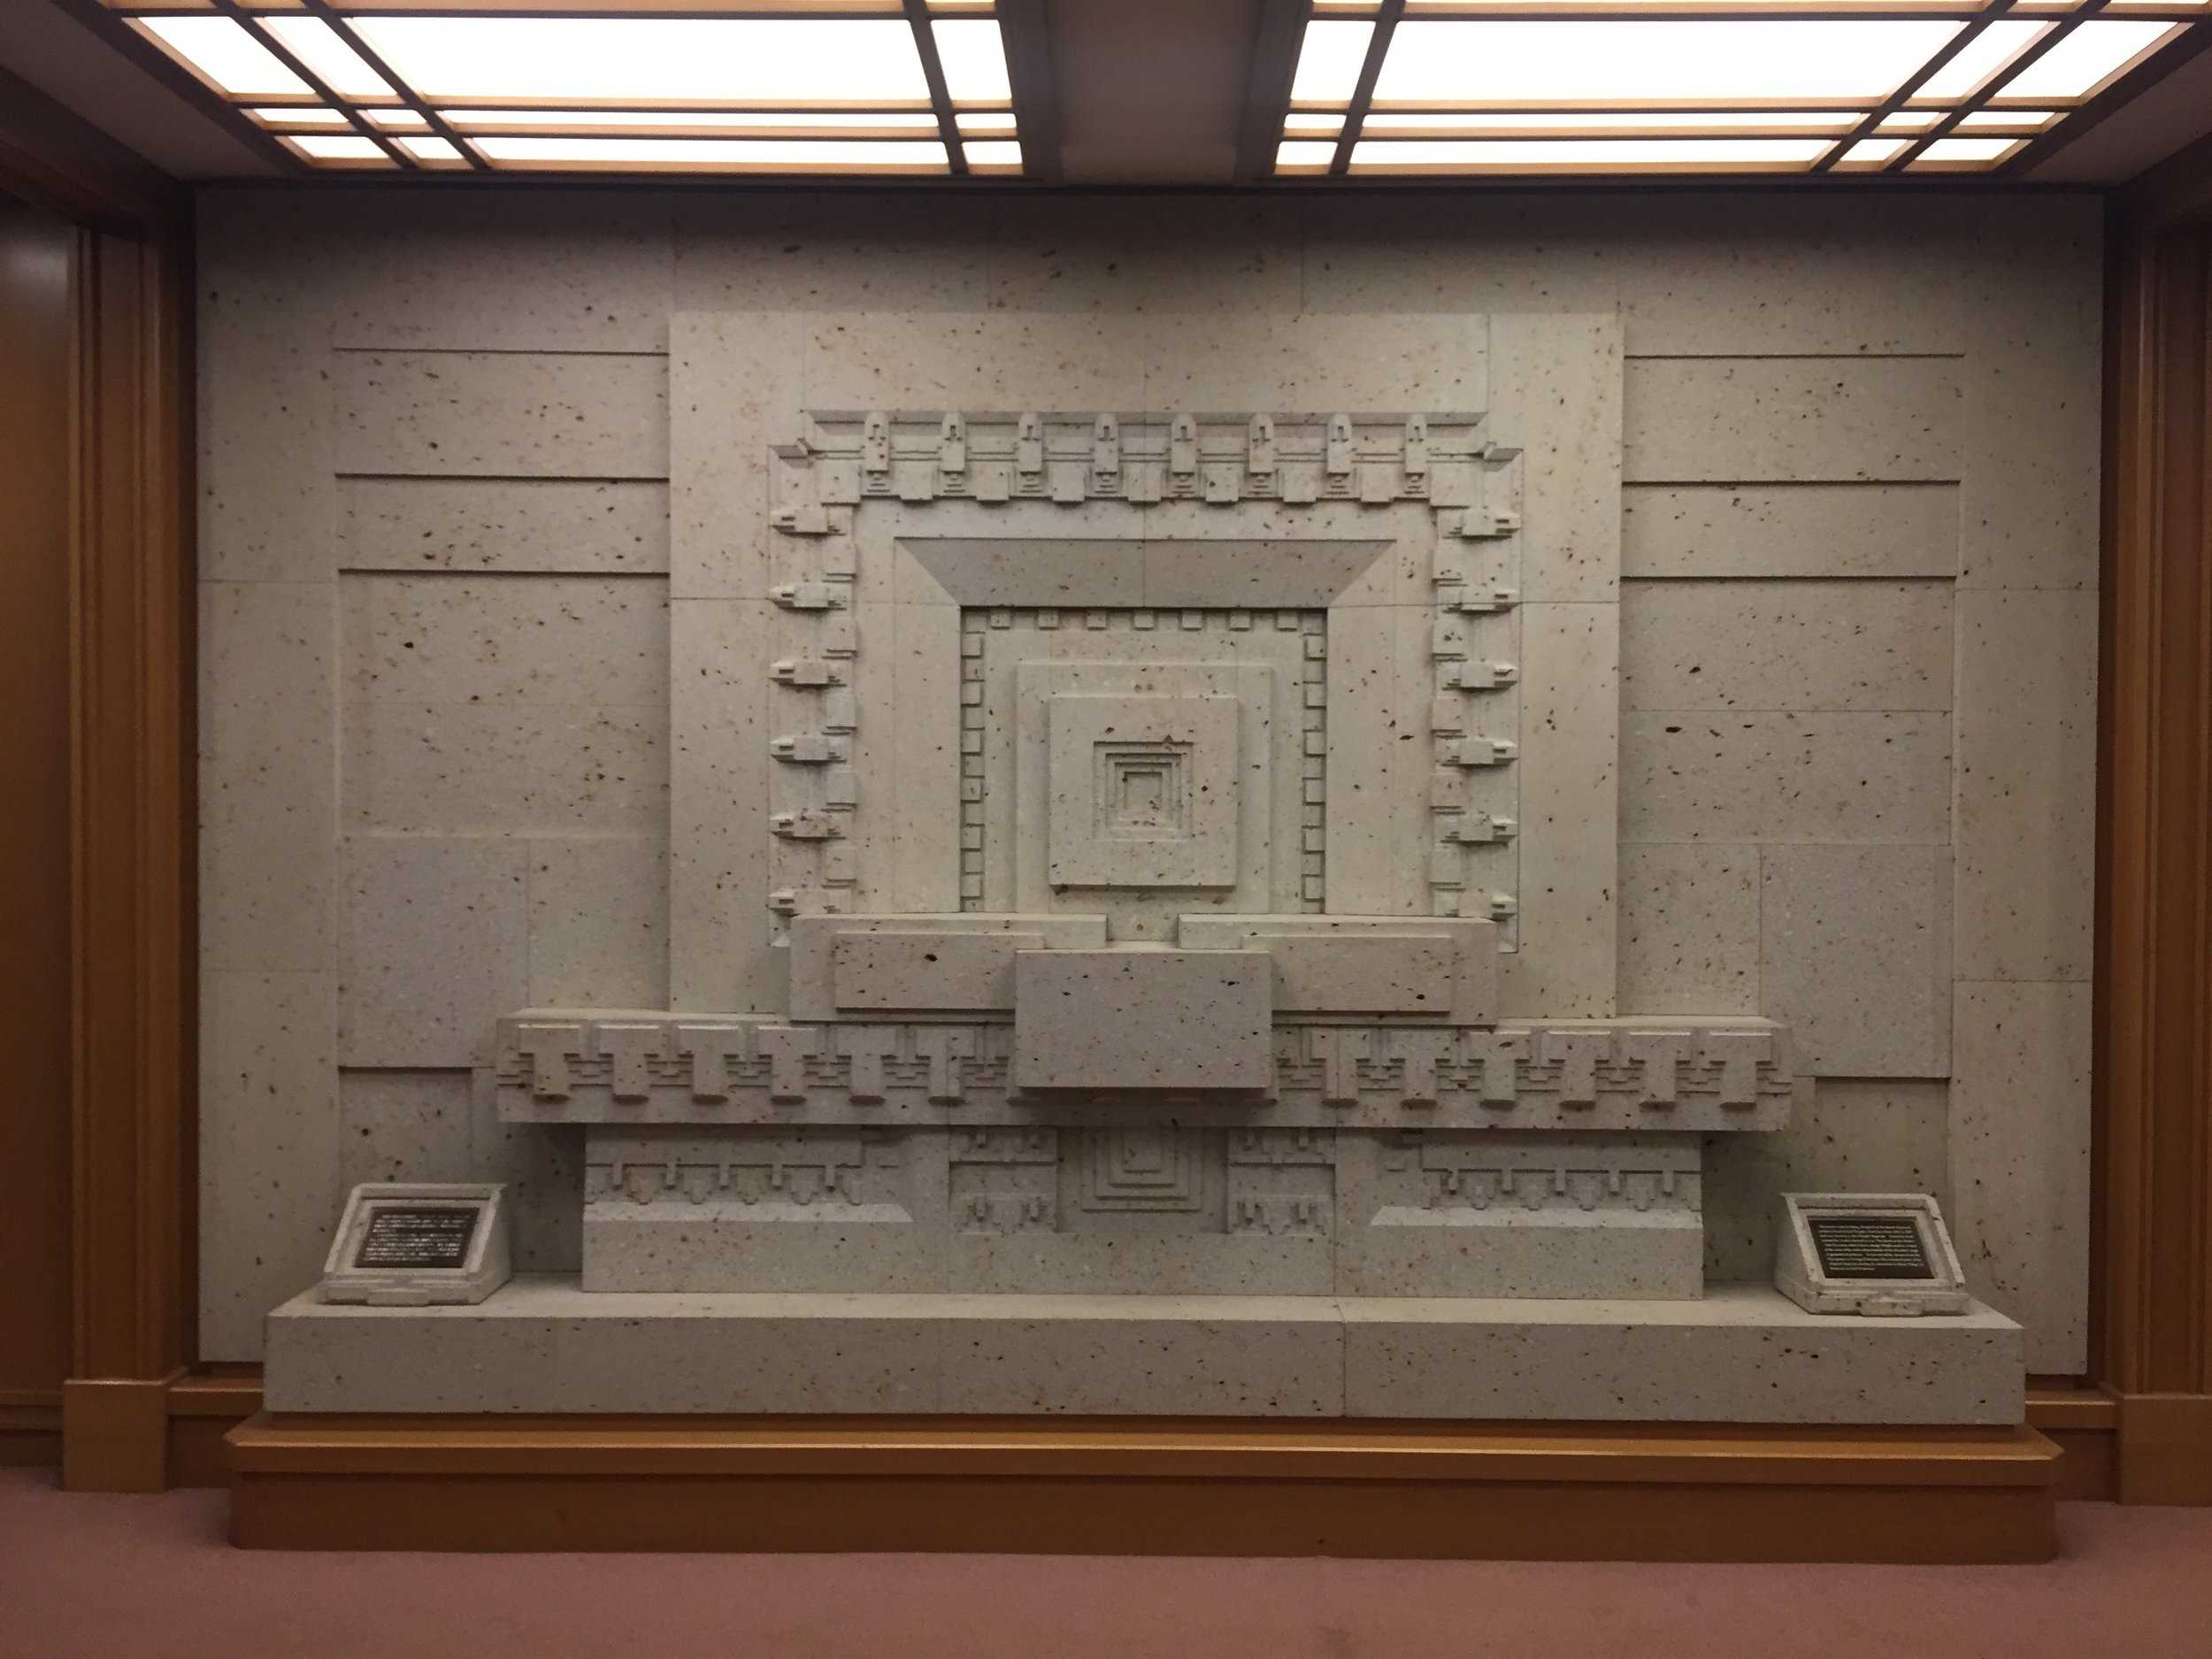 Imperial Hotel (section from the original building designed by Frank Lloyd Wright)